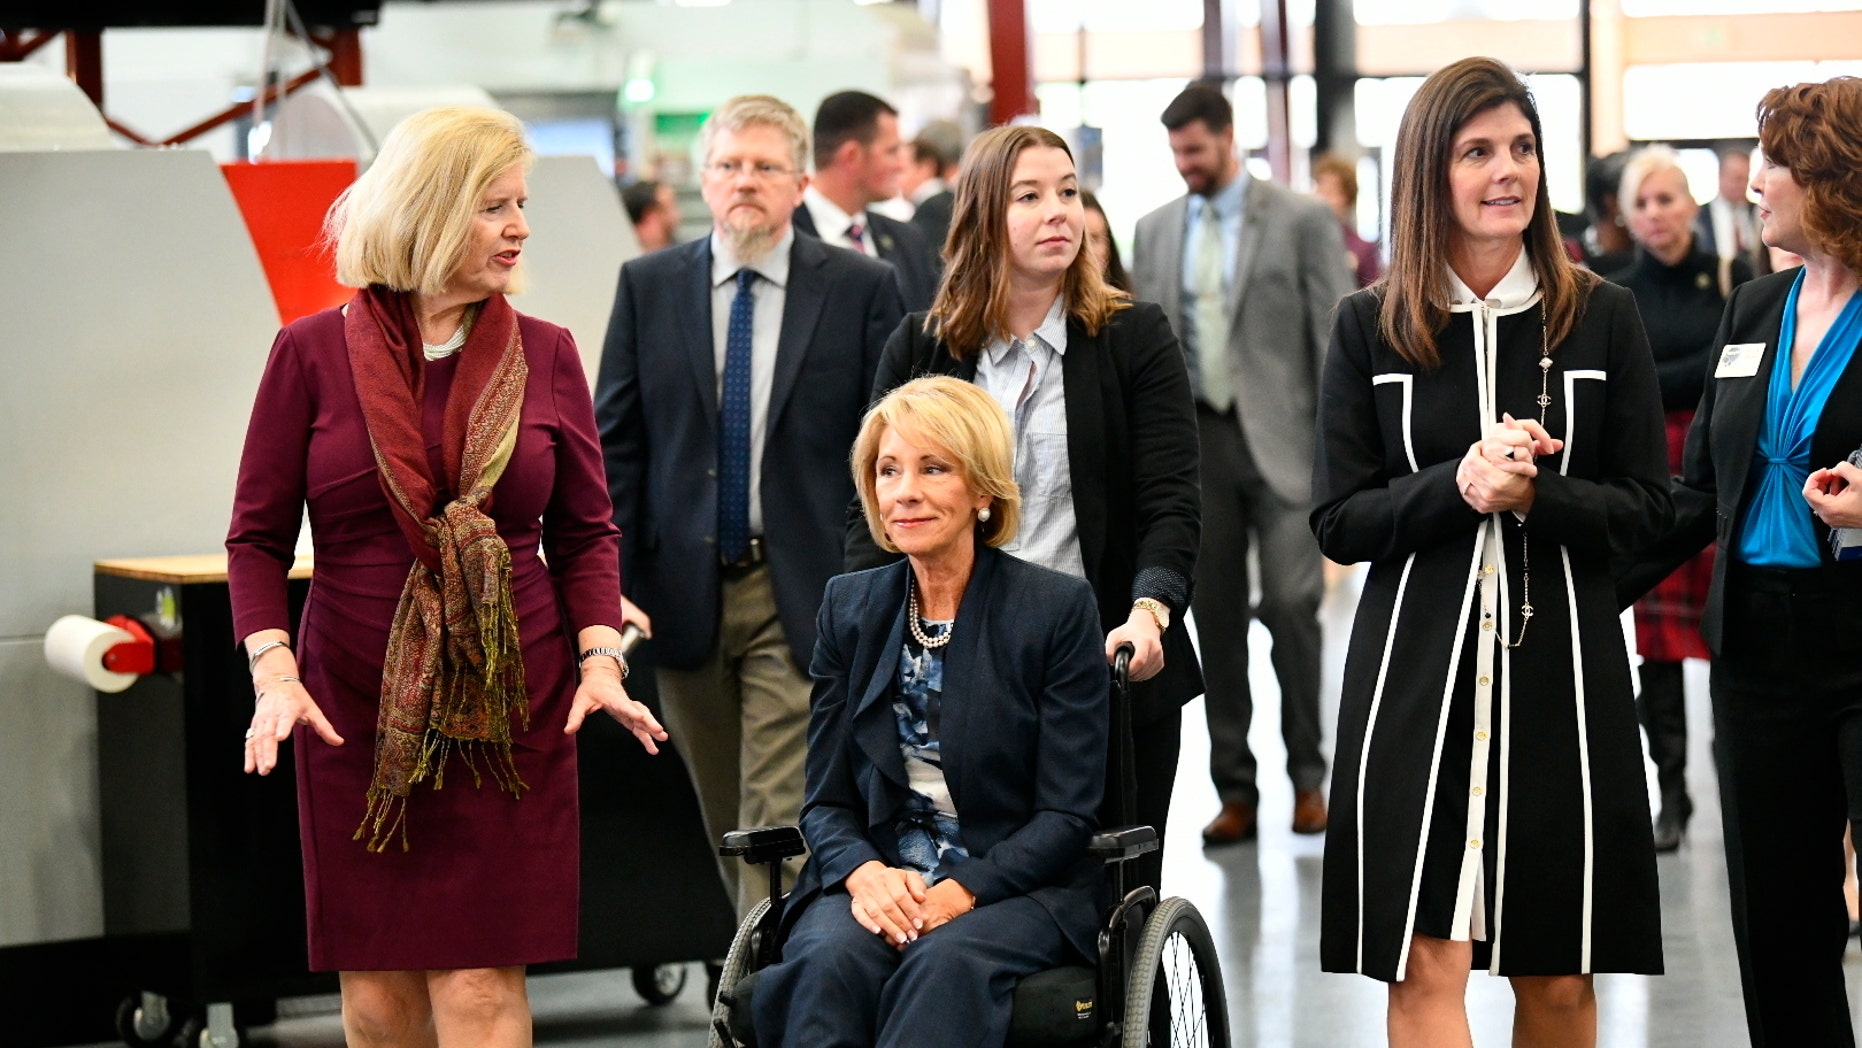 "U.S. Secretary of Education Betsy DeVos, seated, tours a technical college in Florence, S.C., Thursday, Feb. 21, 2019, with state Education Superintendent Molly Spearman, left, and Lt. Gov. Pamela Evette, right. DeVos made a trip to the state to visit an area once known as the ""Corridor of Shame"" where officials say dramatic improvements have been made in schools since state officials took over their control last year. (AP Photo/Meg Kinnard)"